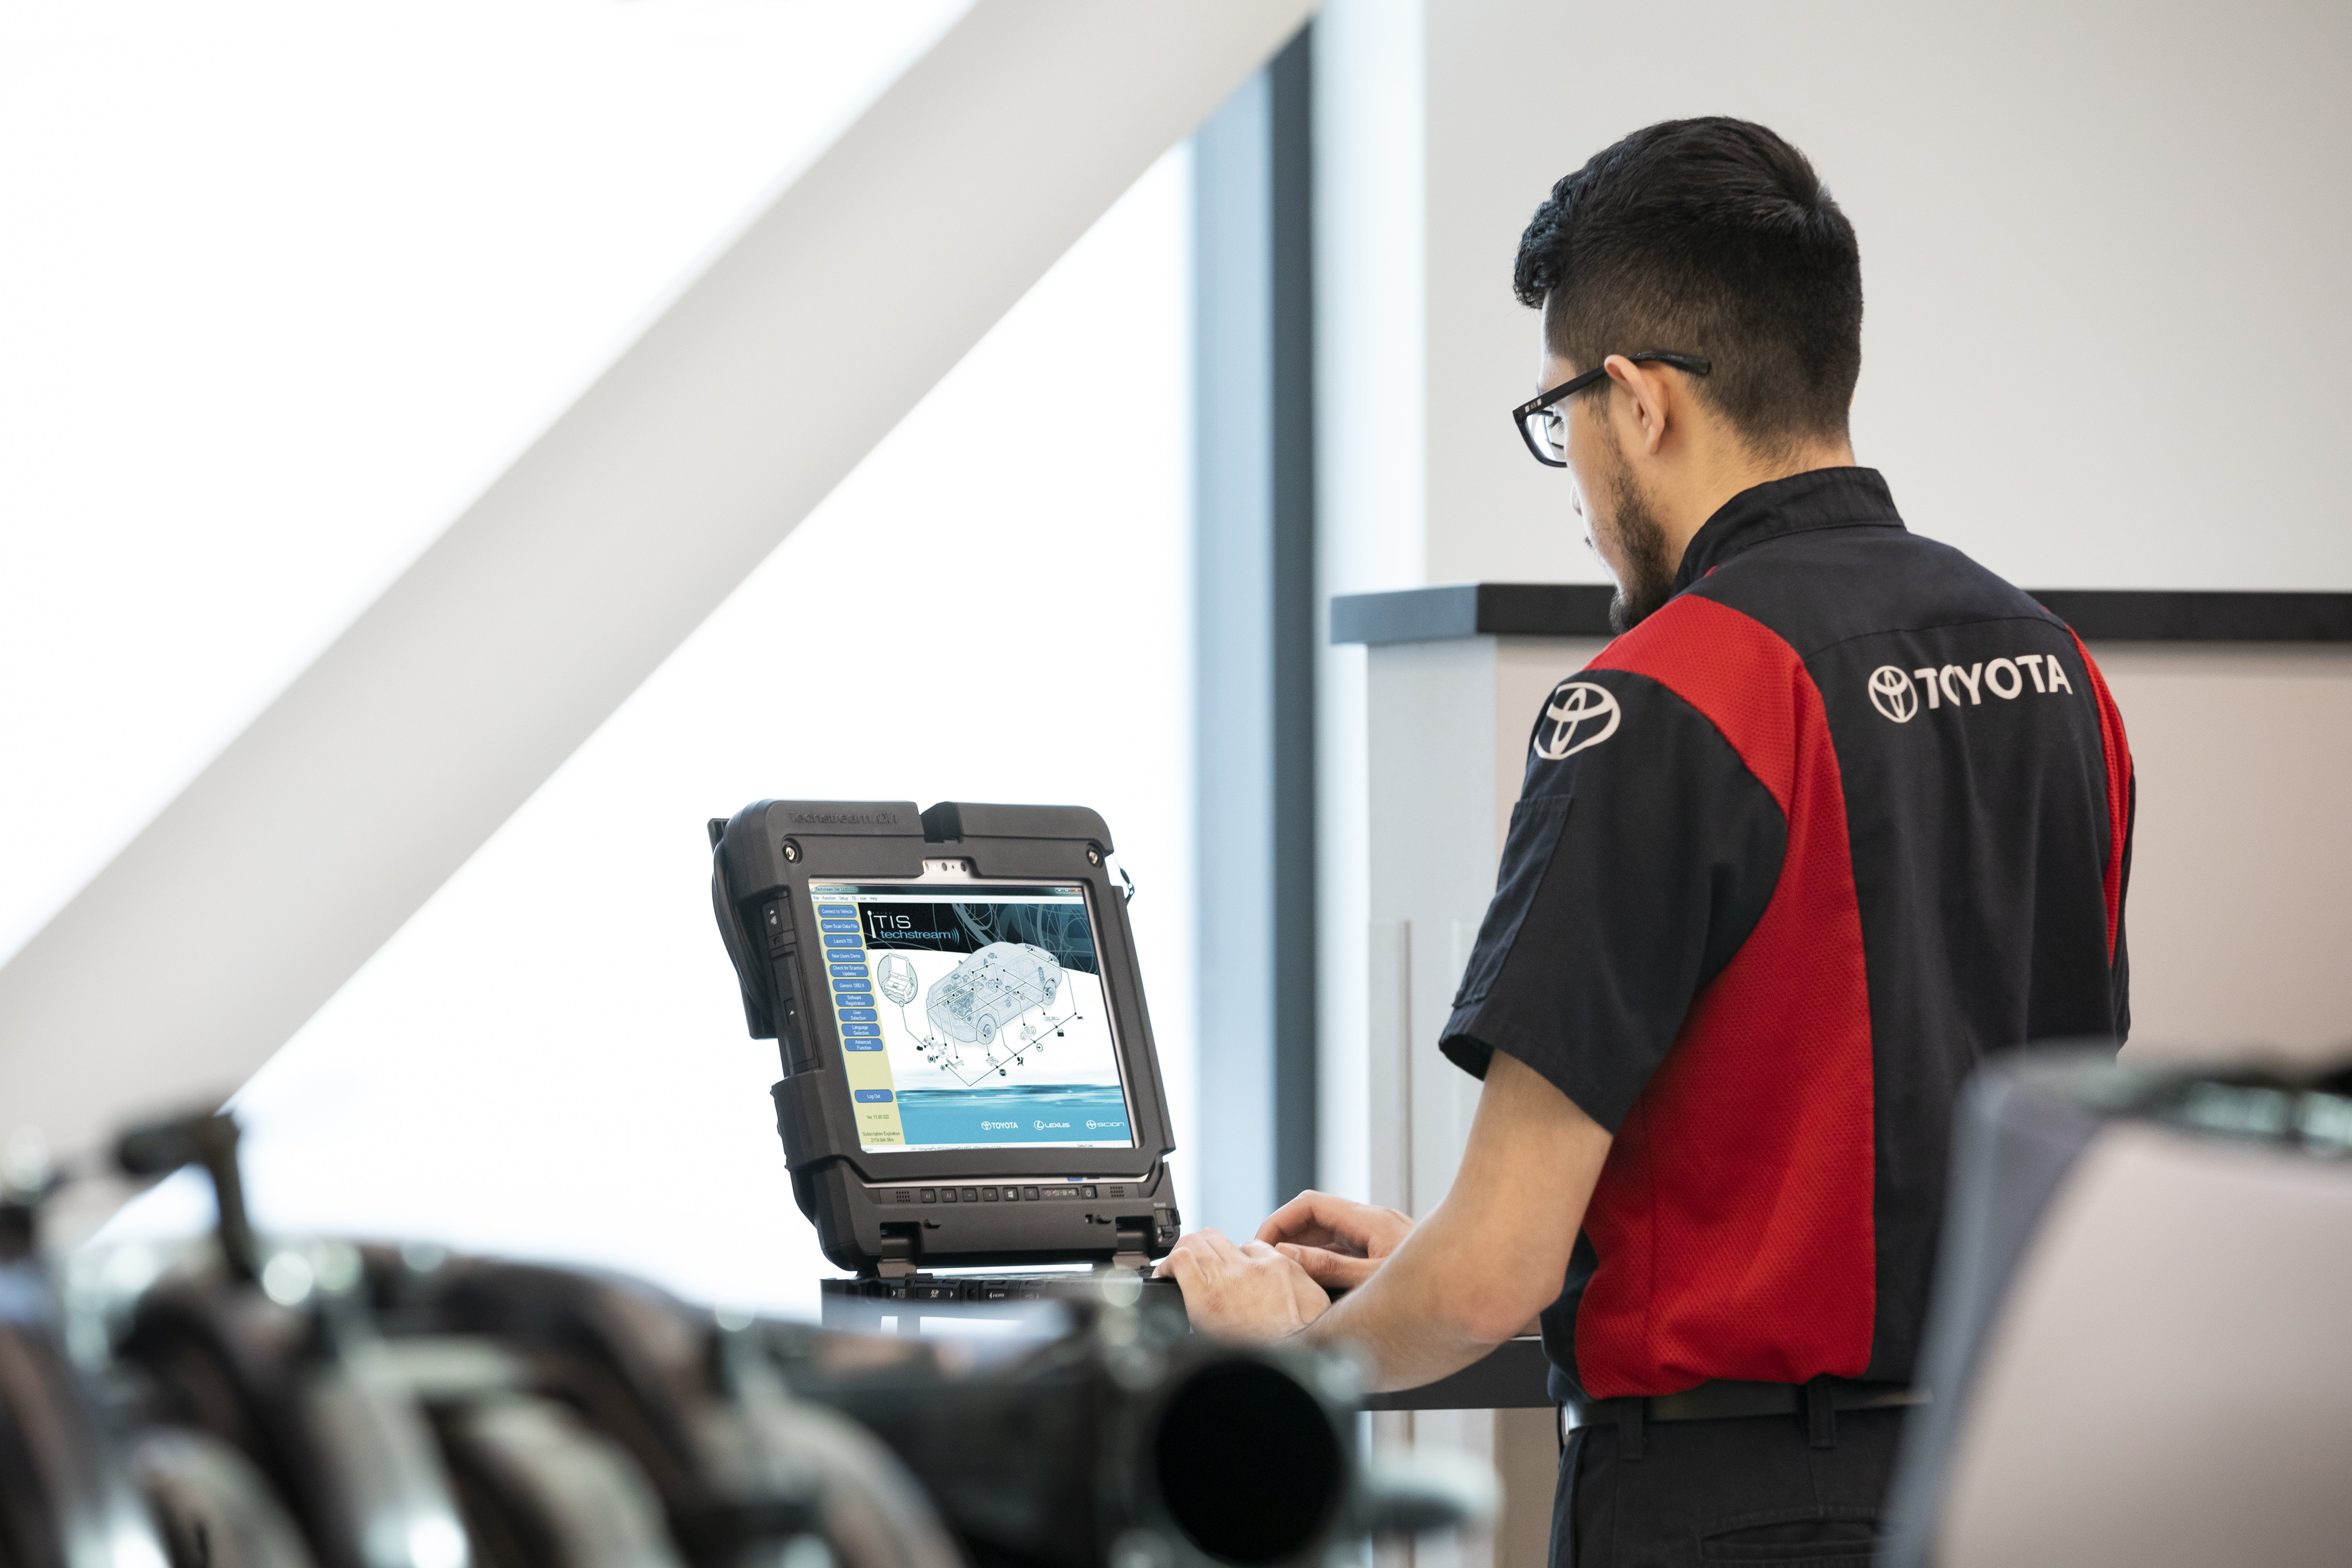 South Hills Toyota is a Toyota Dealership in Canonsburg near Pittsburgh PA | Toyota Service Technician typing on laptop in Toyota Service Center